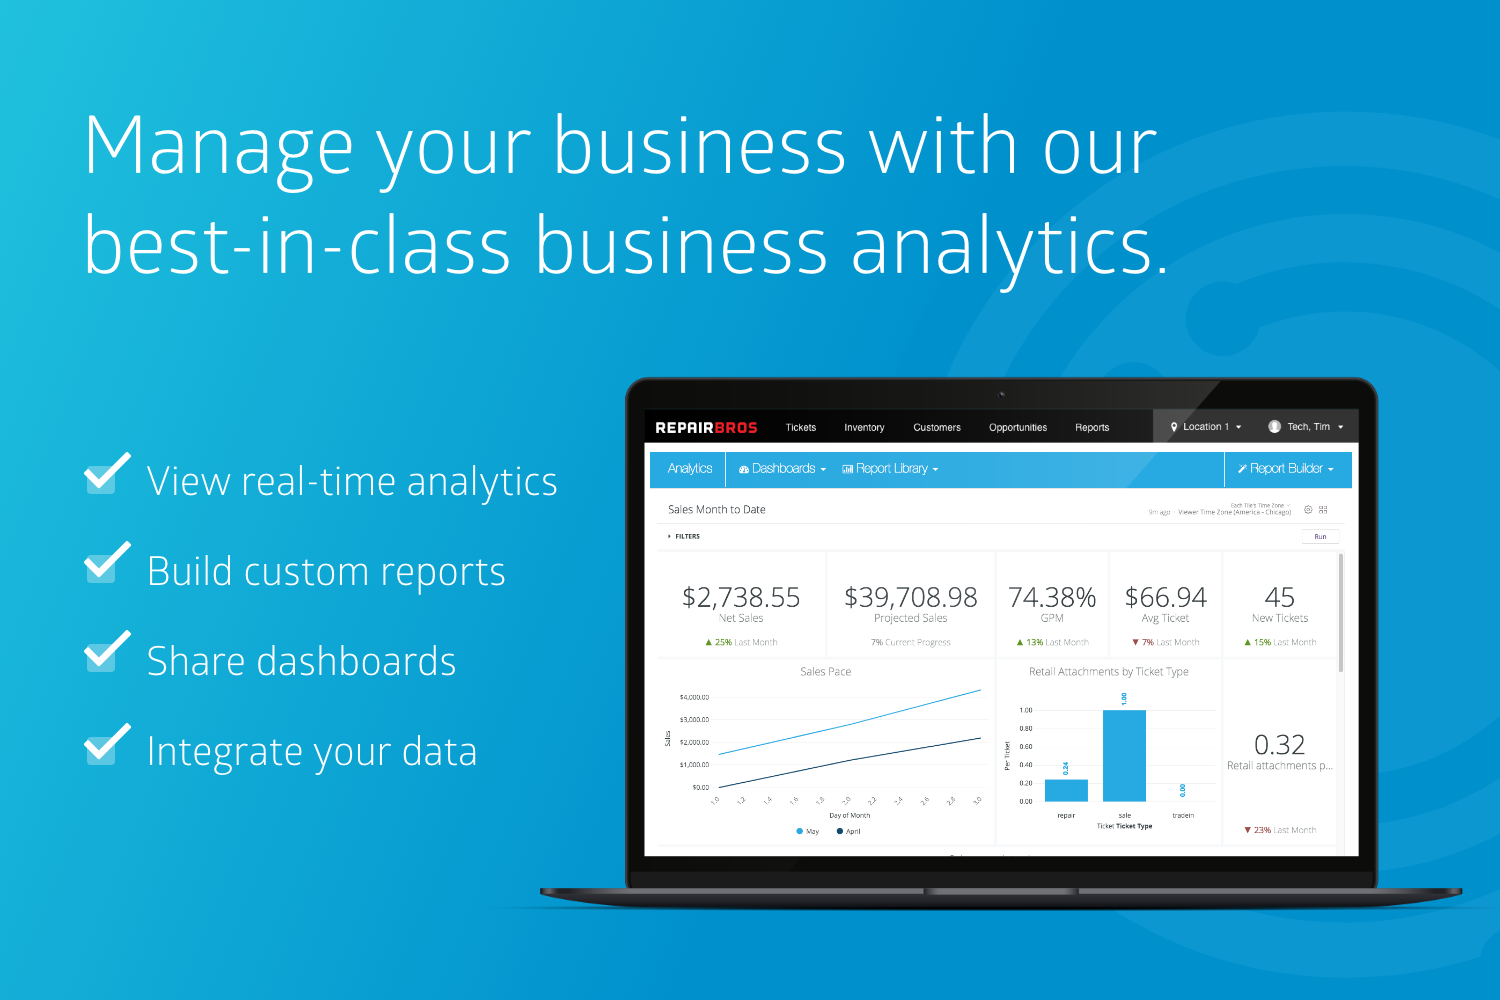 Manage your business with our best-in-class business analytics.